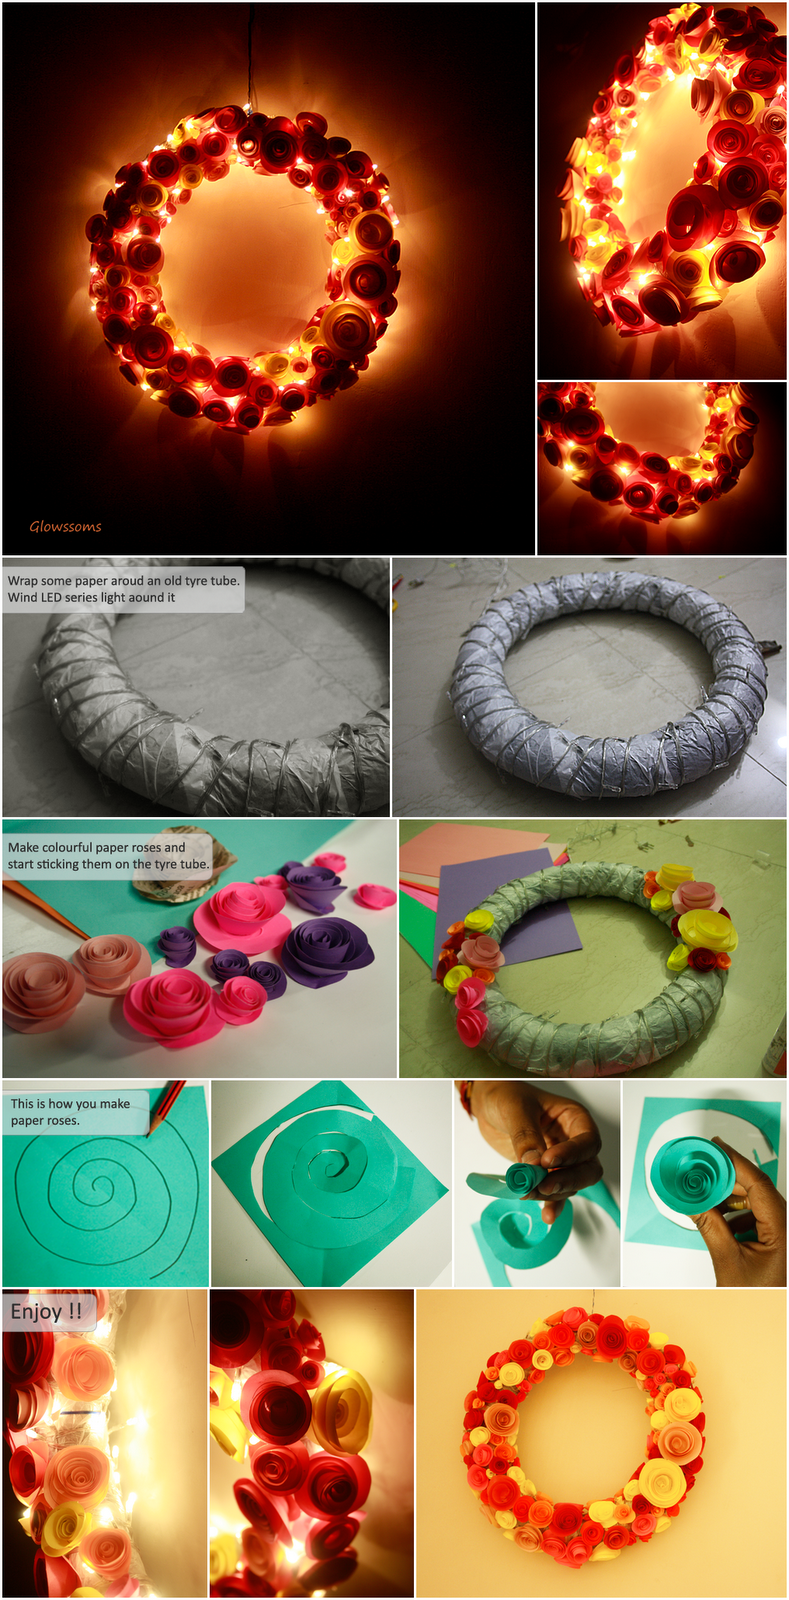 Glowssoms : Flowery Lamp made by using old tyre tube, LED lights and paper roses  #DYI  Crafts# lamps # Lights